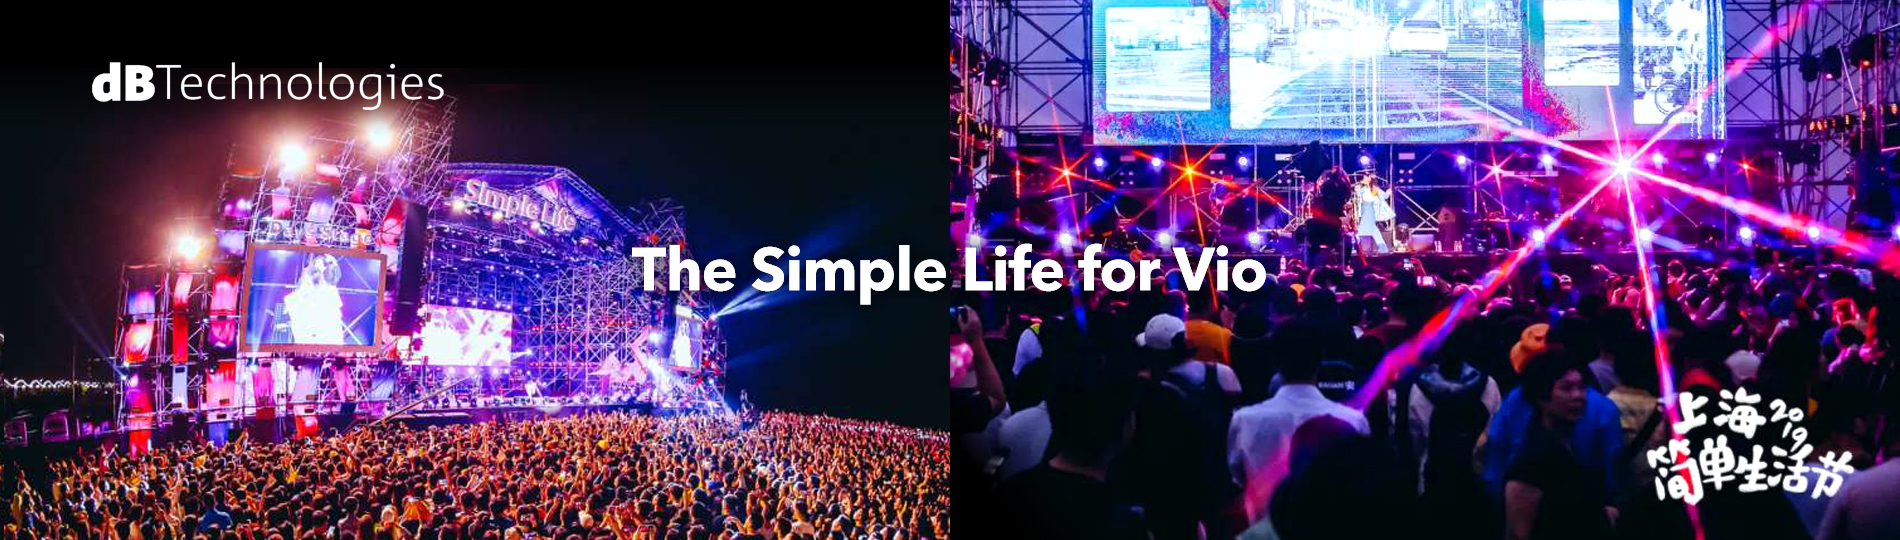 The Simple Life for Vio